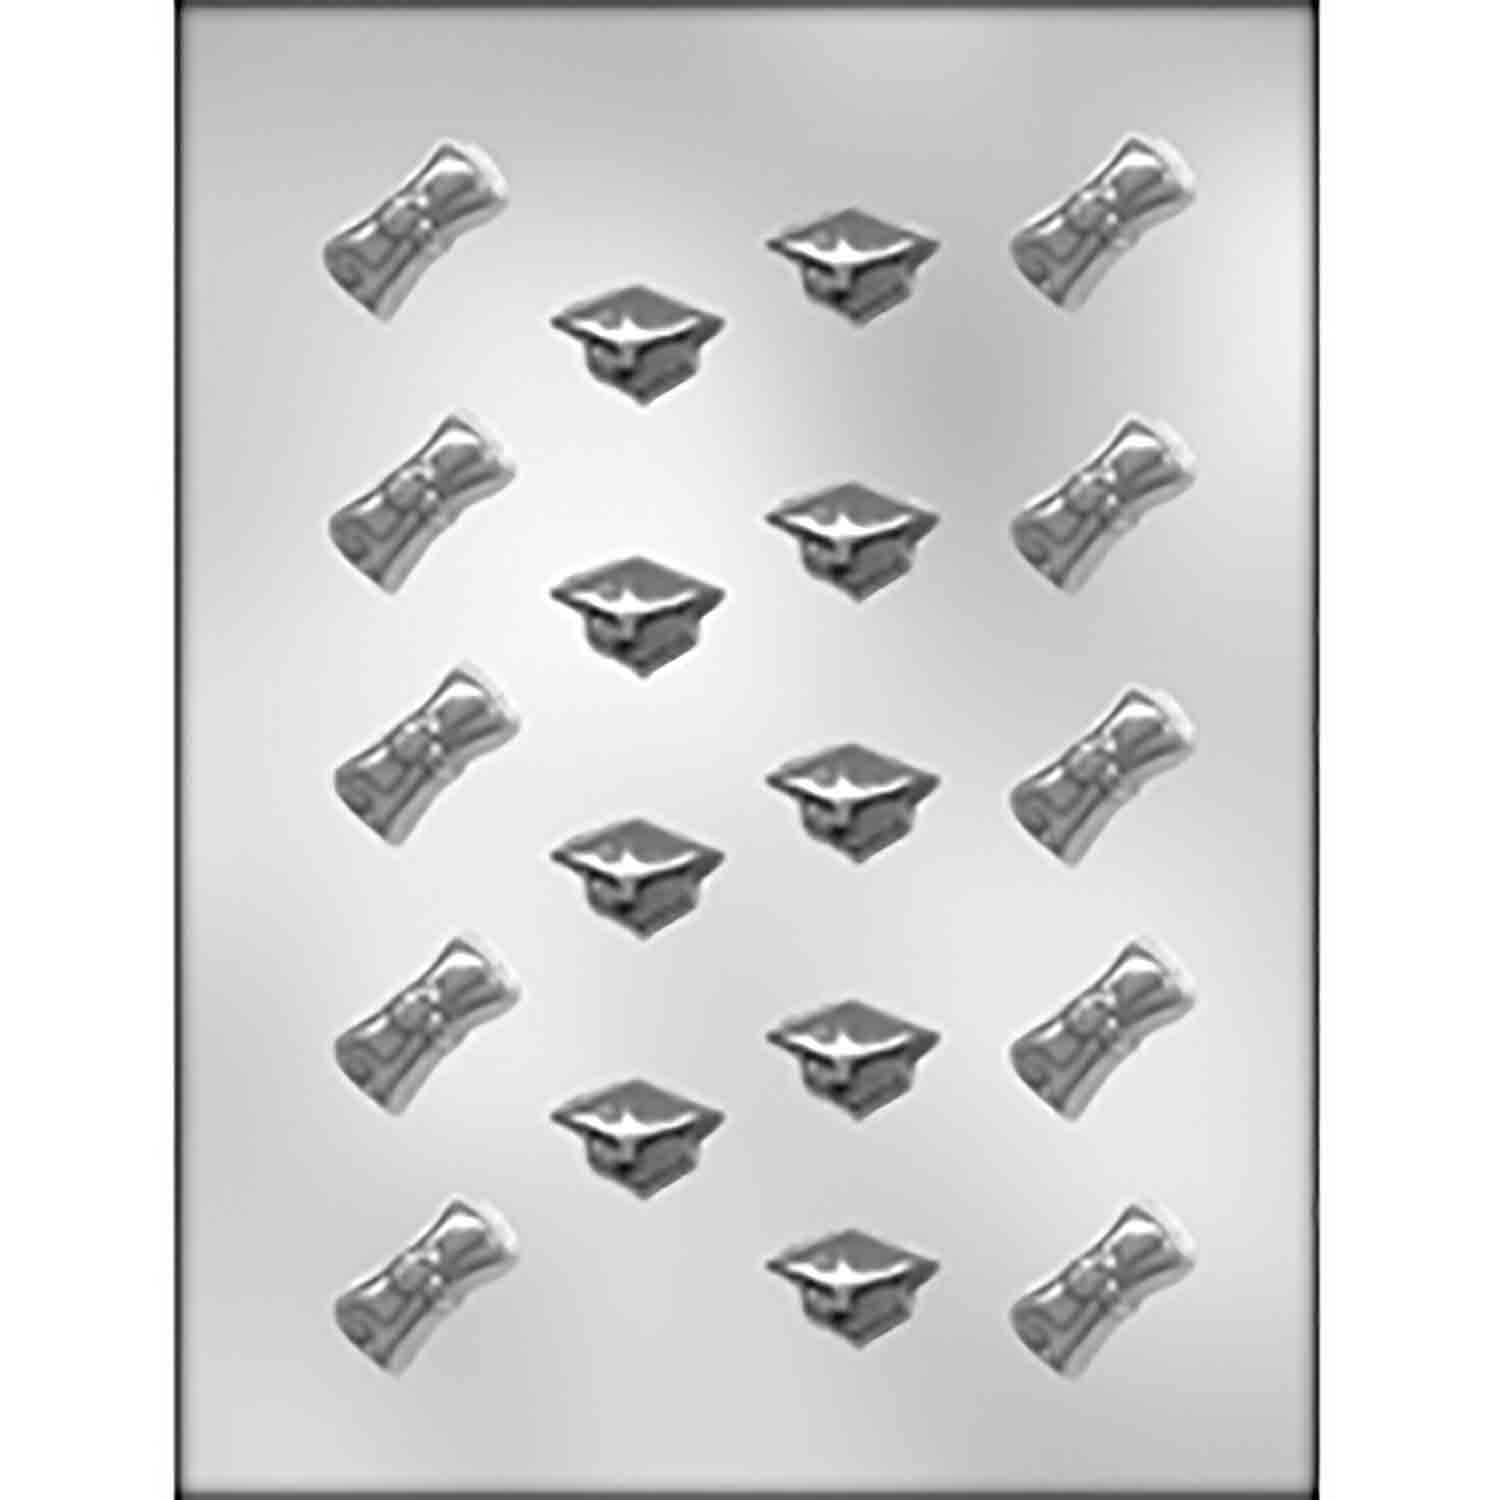 Diplomas & Graduation Caps Chocolate Candy Mold